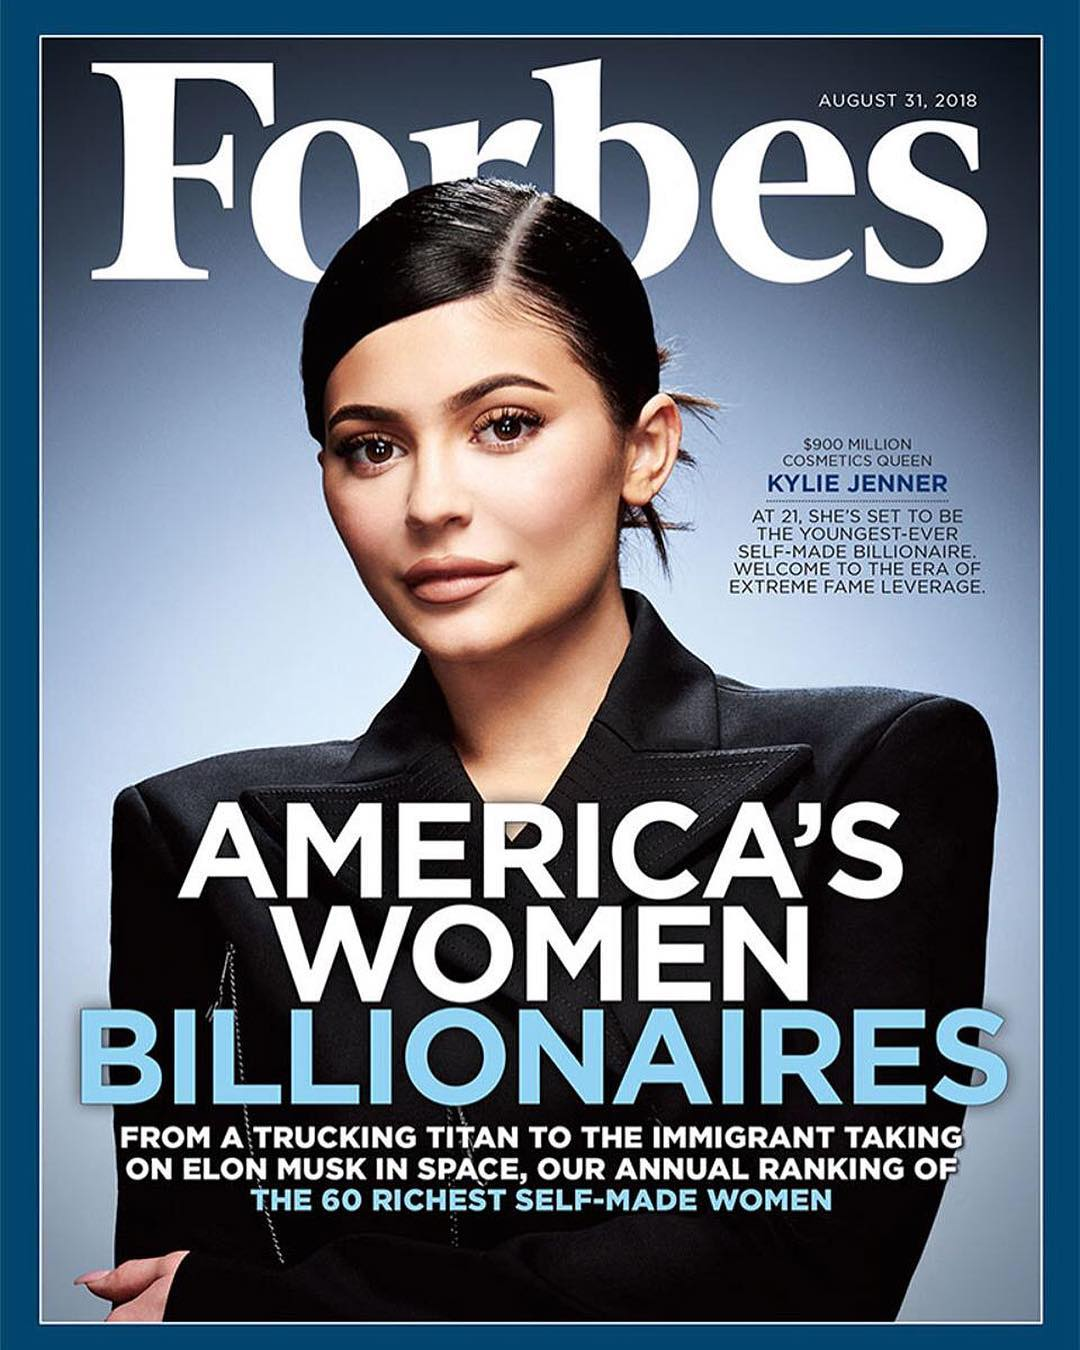 Kylie Jenner for Forbes Magazine